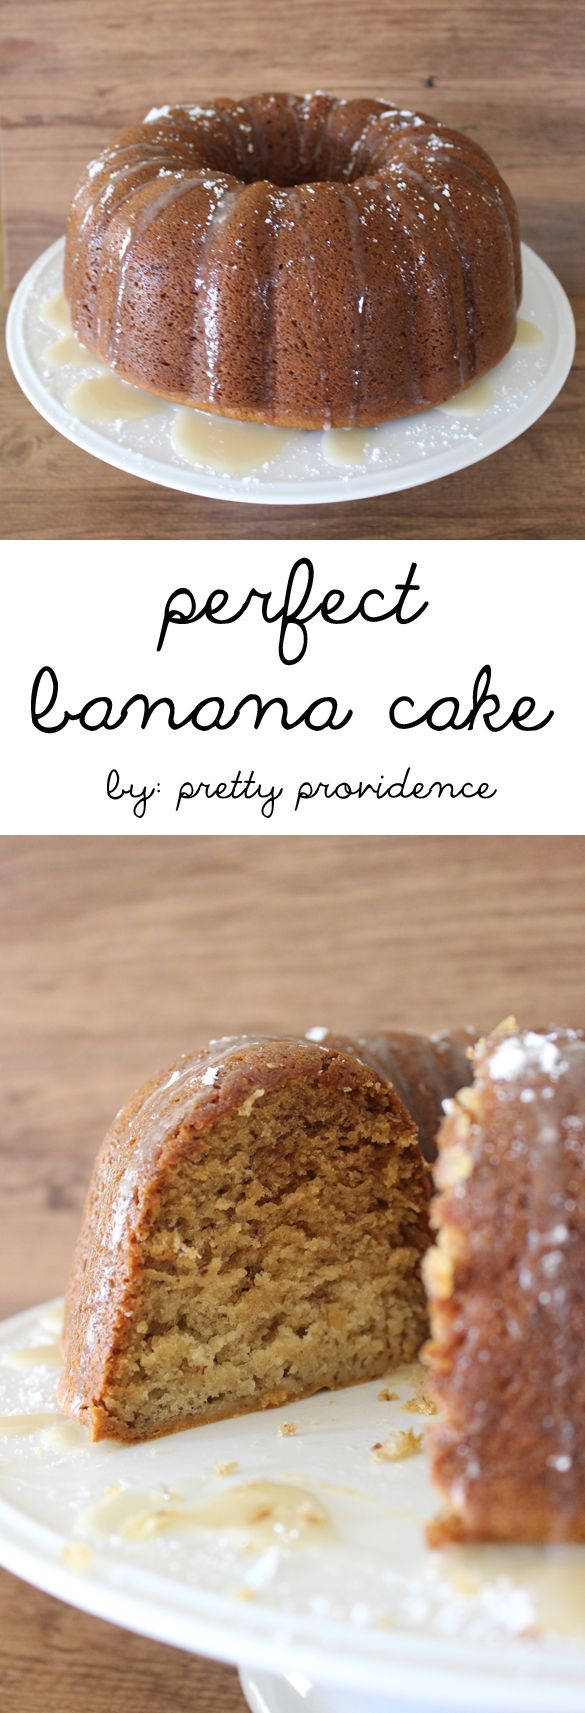 The perfect banana cake is right. Soft and full of flavor, and the vanilla icing is to die for!